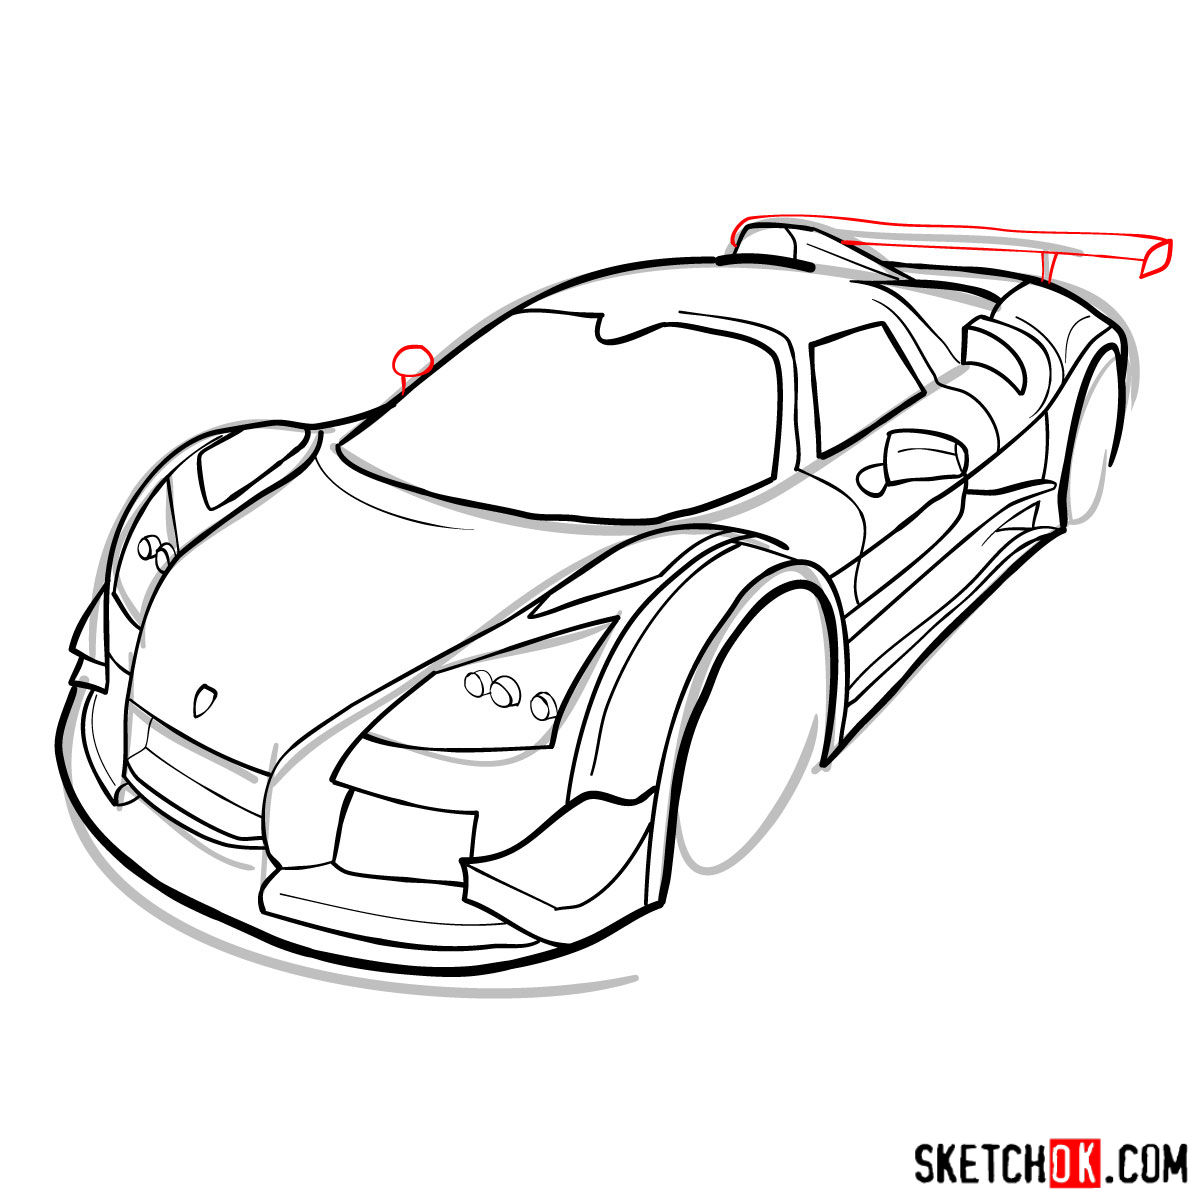 How to draw Gumpert Apolo Sport 2012 - step 11